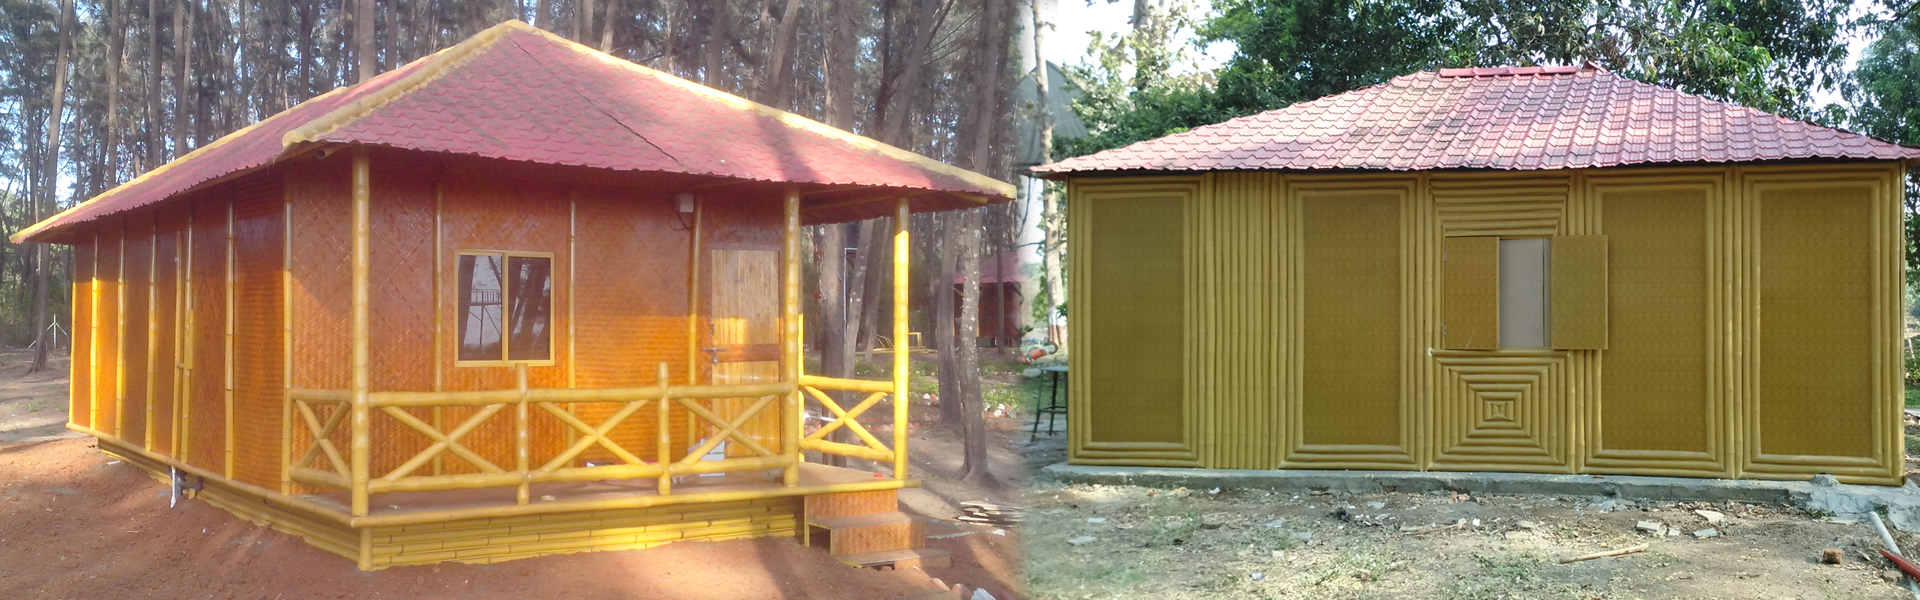 Security Cabins Office Cabins Portable Toilet Cabins